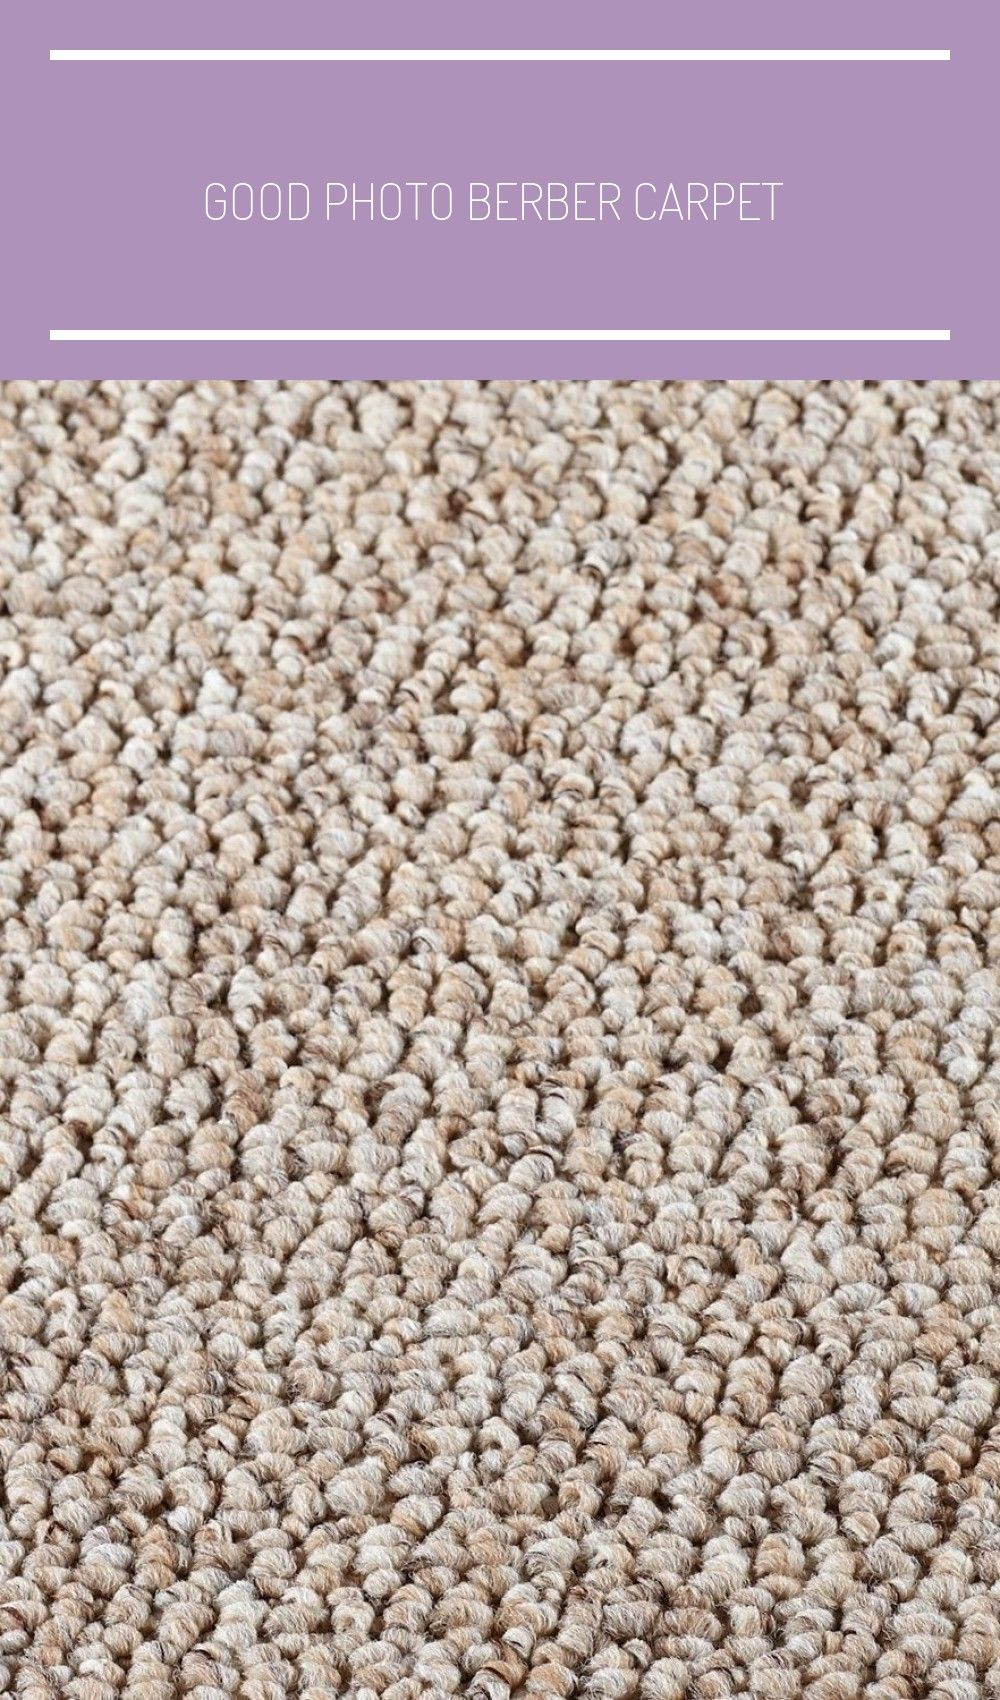 Good Photo Berber Carpet Textured Tips To Fully Know What Berber Carpet Is And How It S Used In The House We Have To Clea In 2020 Textured Carpet Berber Carpet Carpet